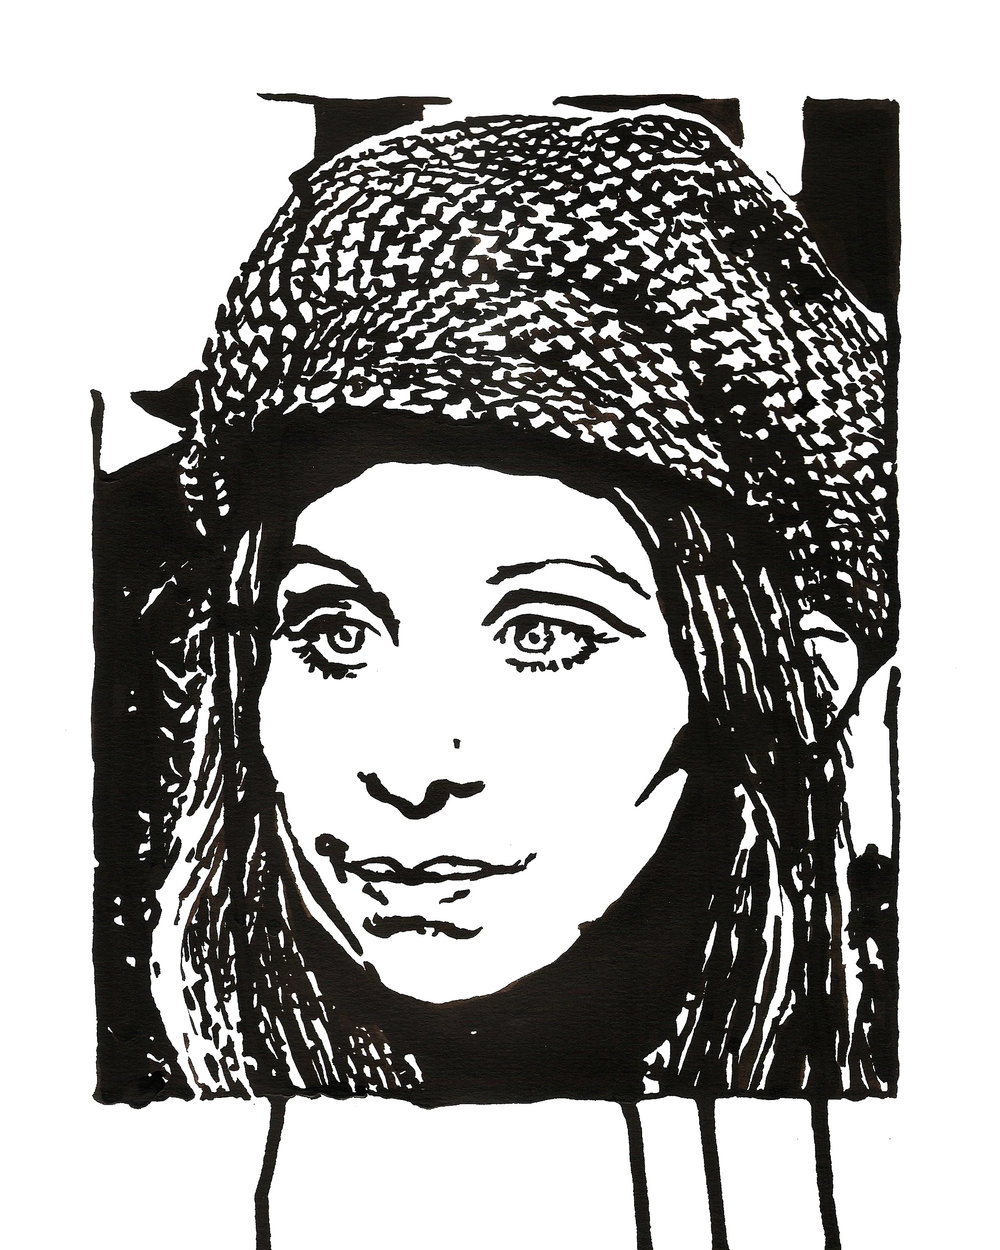 "Barbra Streisand In Houndstooth 9"" x 12"" ink on paper"